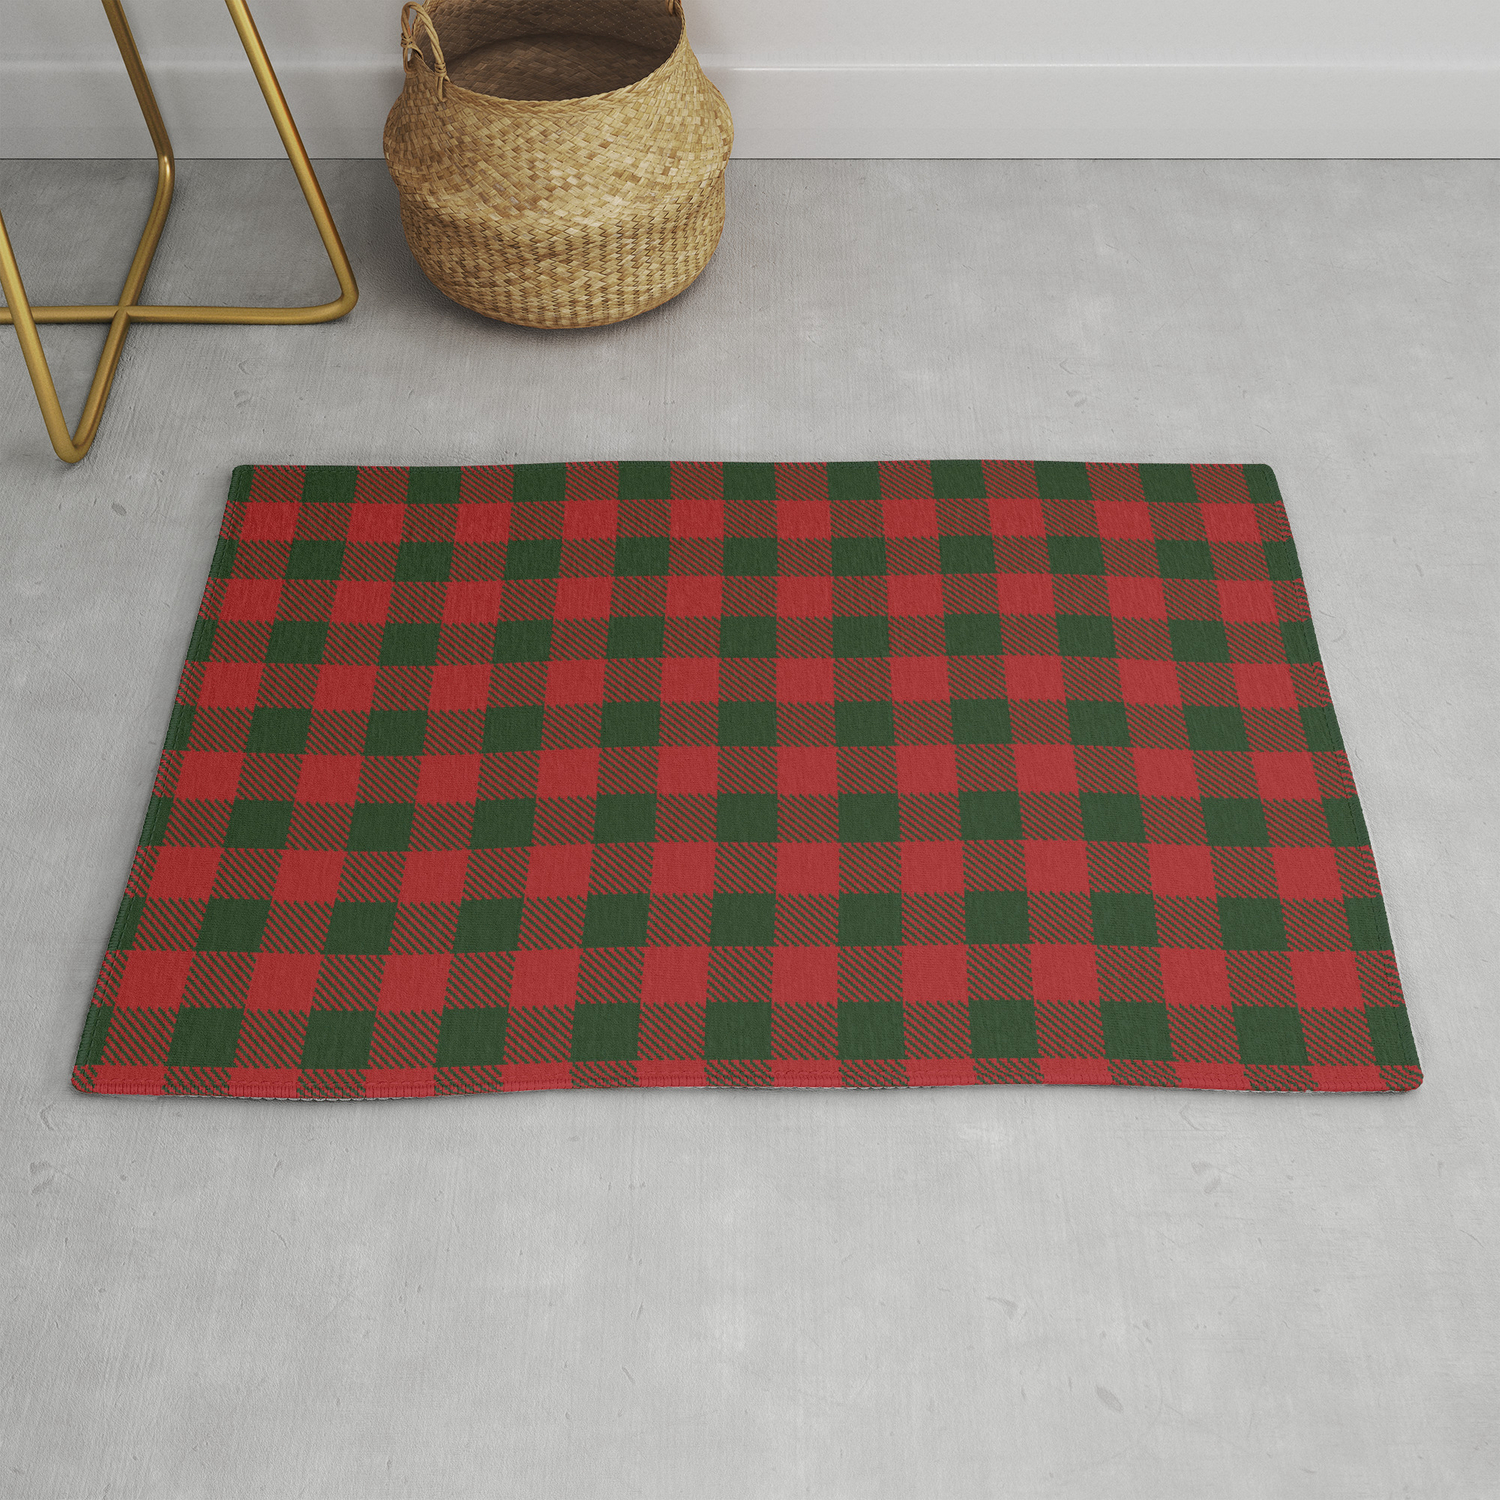 90 S Buffalo Check Plaid In Christmas Red And Green Rug By Elliottdesignfactory